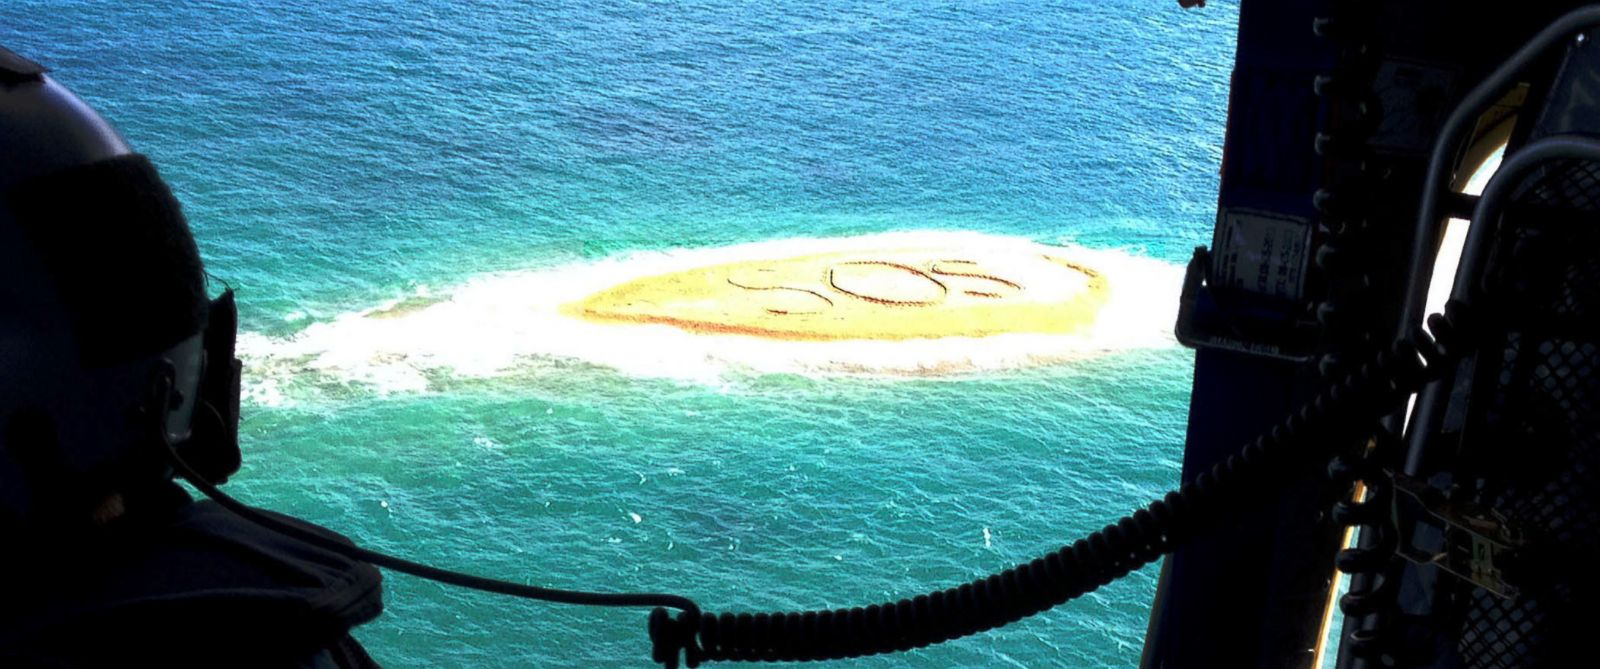 PHOTO: A handout image released by the Royal Australian Automobile Club of Queensland (RACQ) on shows a view from a RACQ Rescue helicopter showing a giant SOS message on a sandbar near Brampton Island, Queensland, Australia, on April 21, 2014.